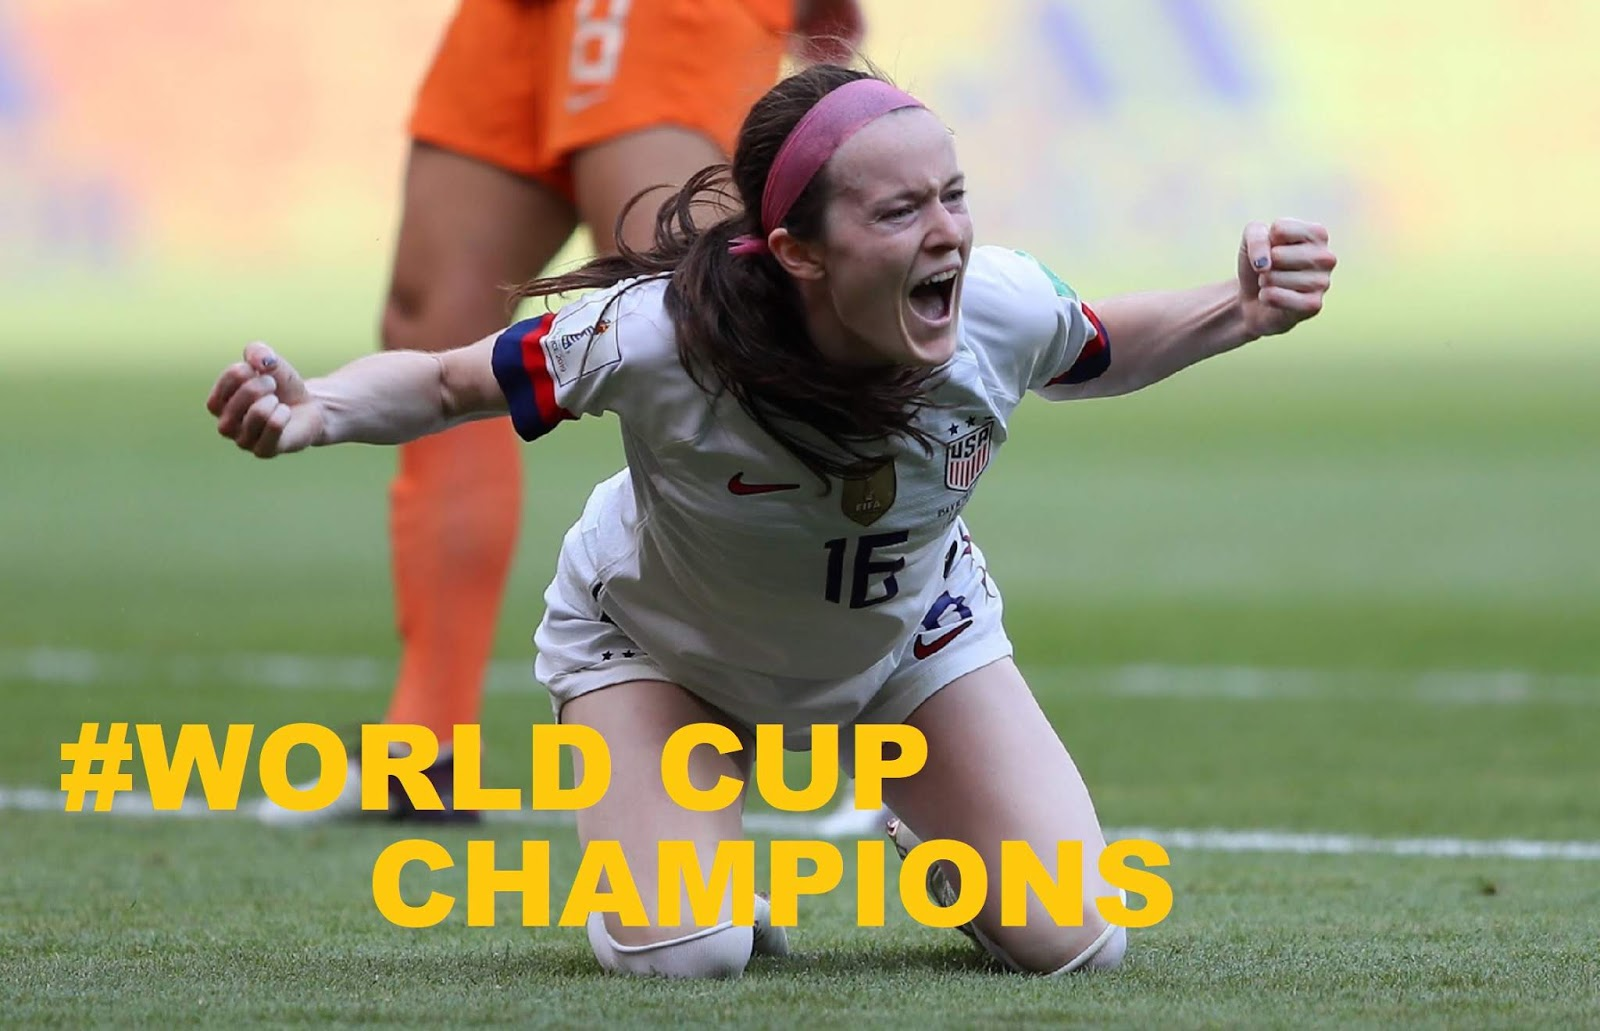 WOMEN'S WORLD CUP 3